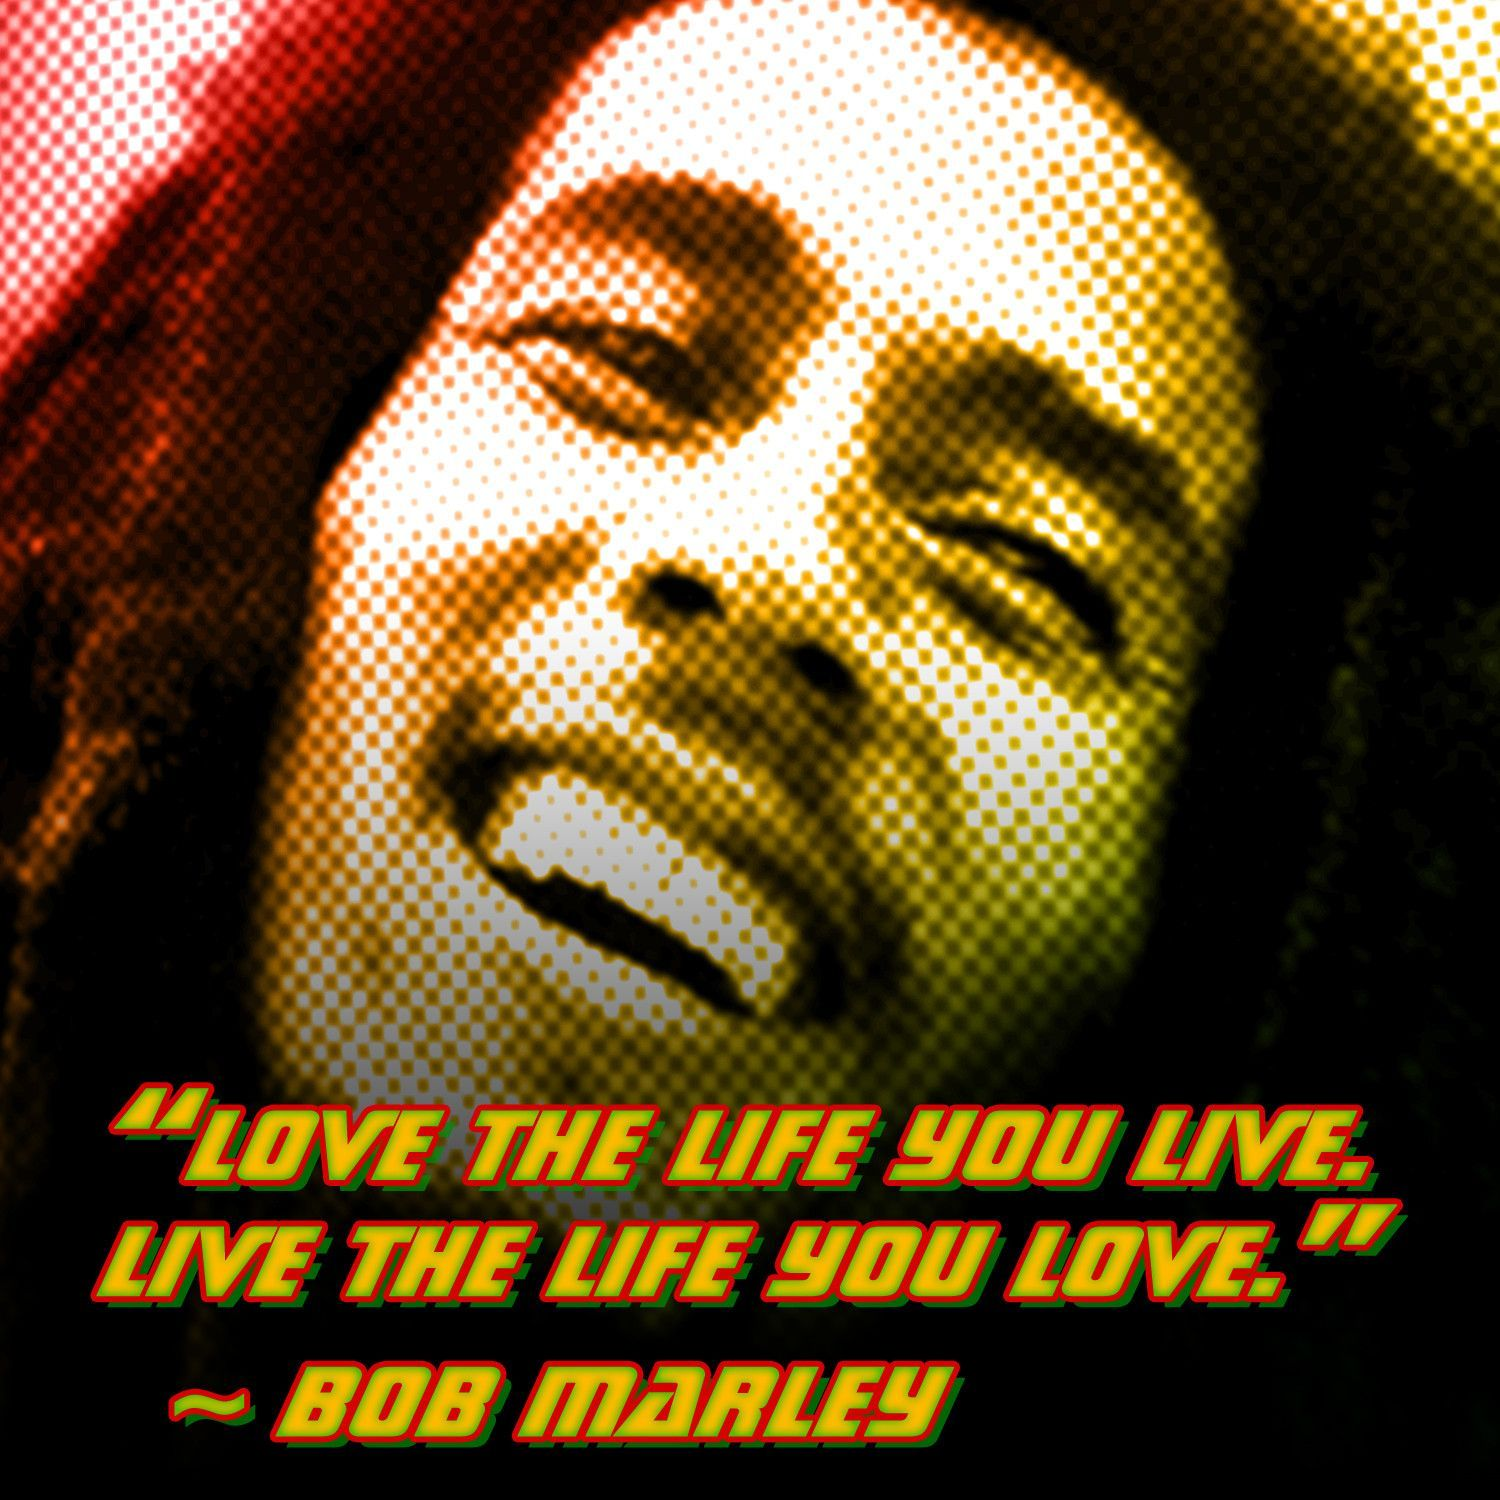 Bob-Marley-for-Android-Free-Download-on-MoboMarket-wallpaper-wpc5802990